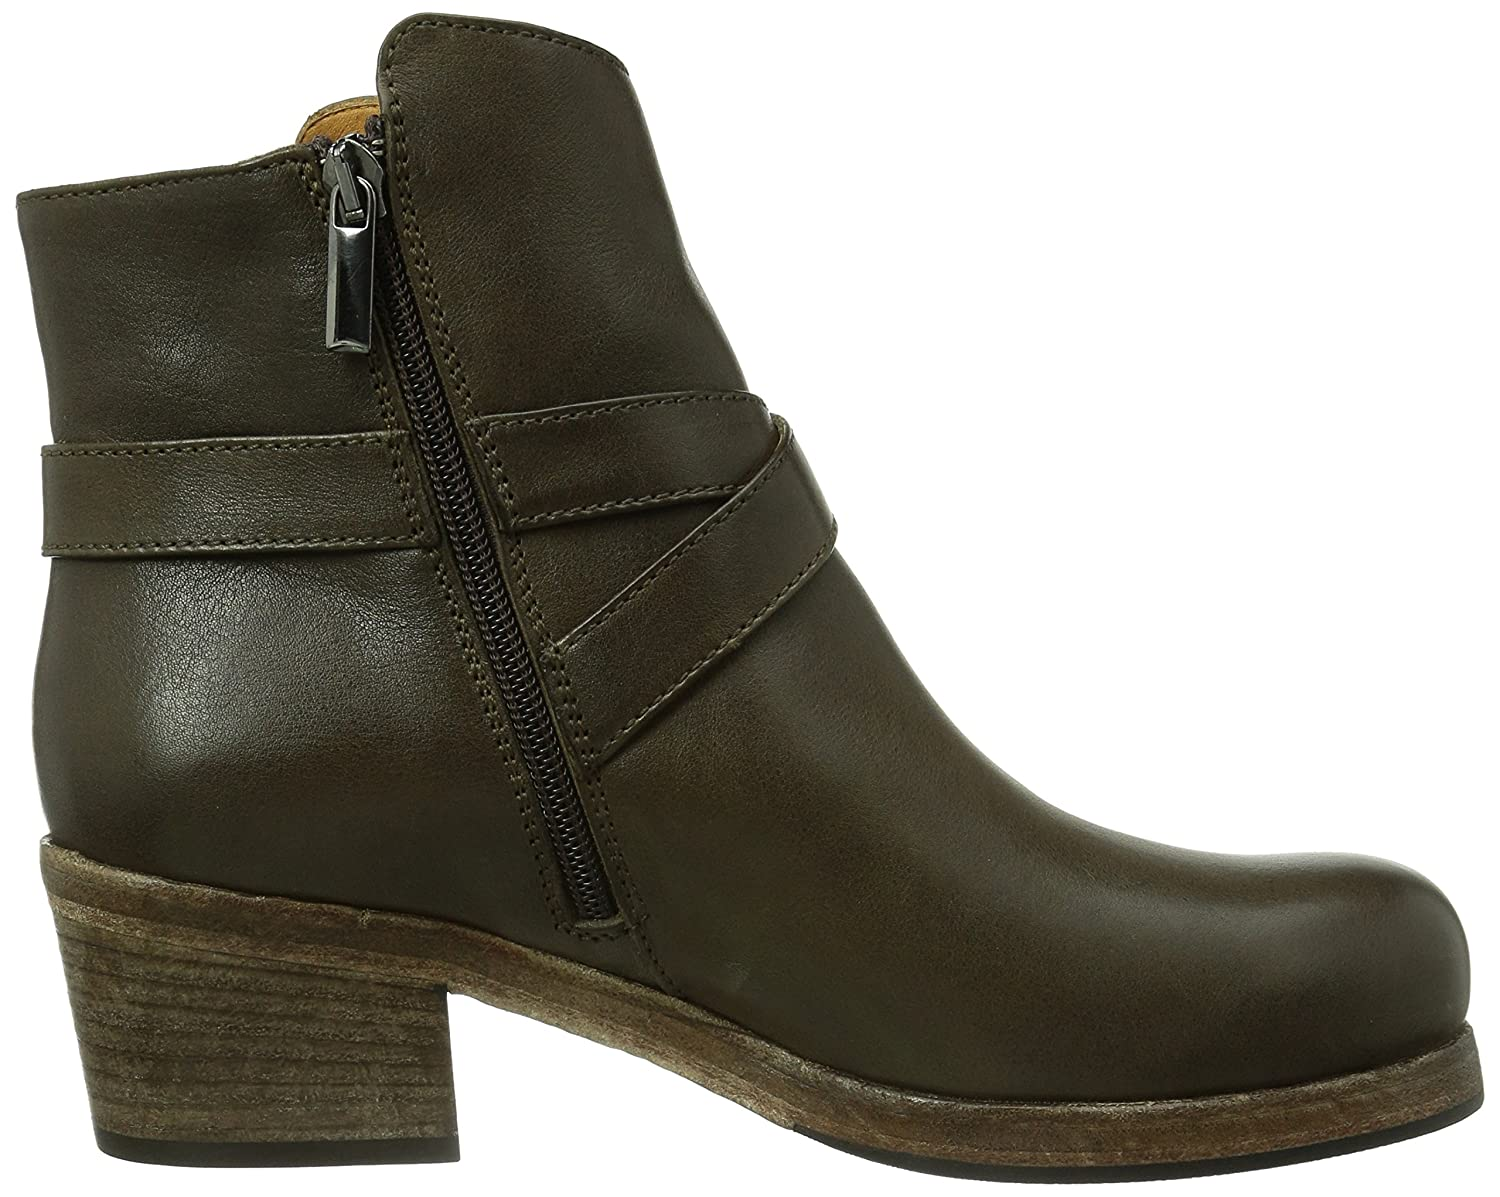 N494, Boots femme - Vert, 38 EUObjects In Mirrors